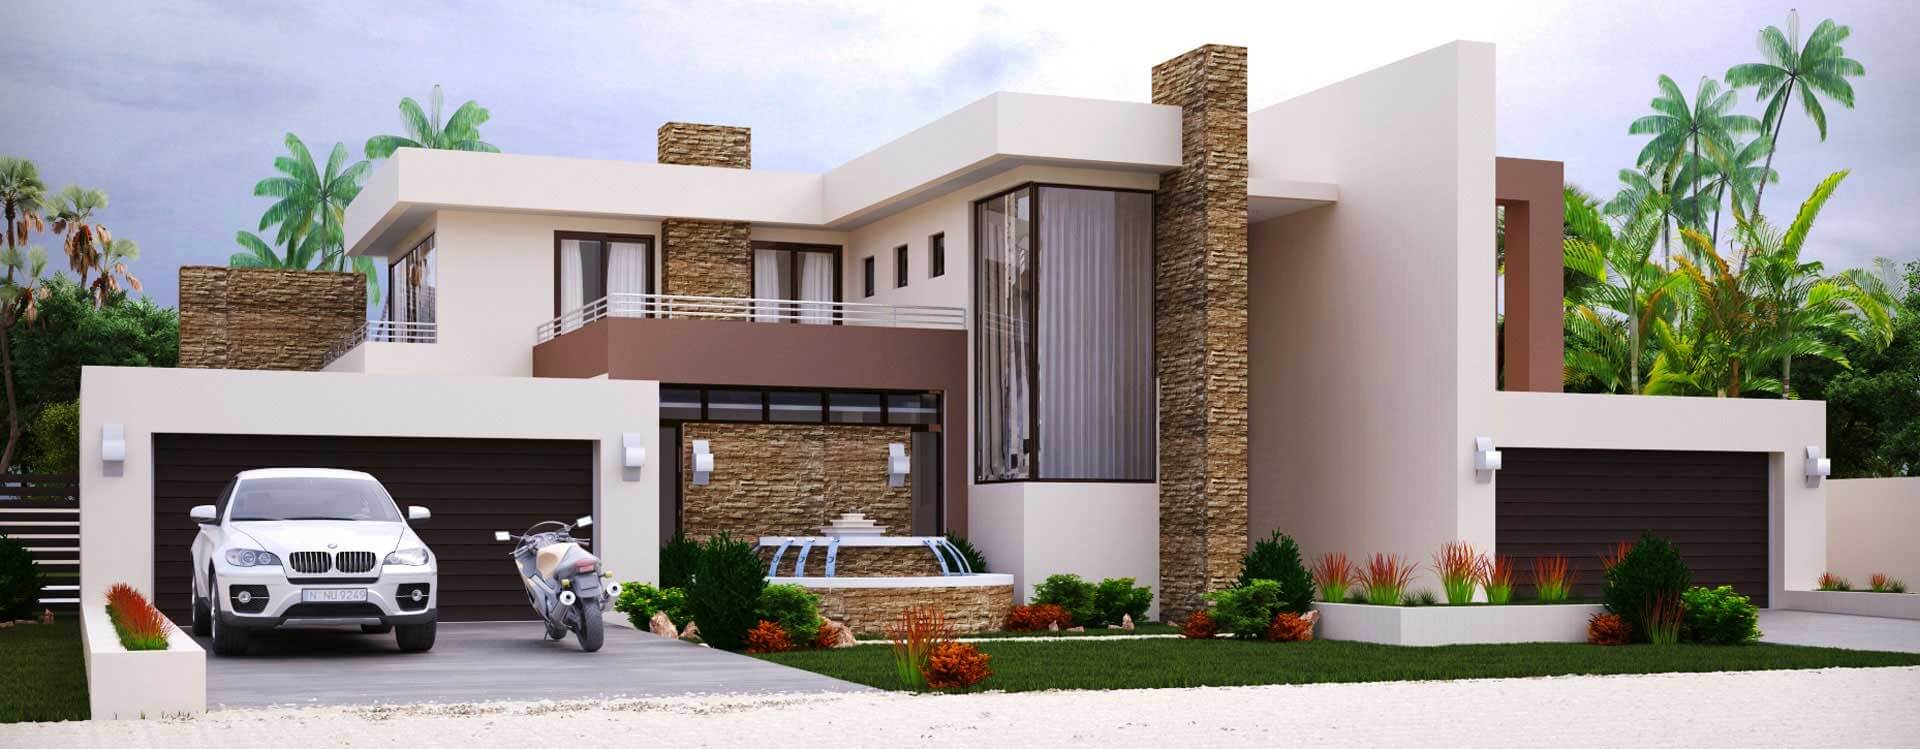 modern house design in jamaica